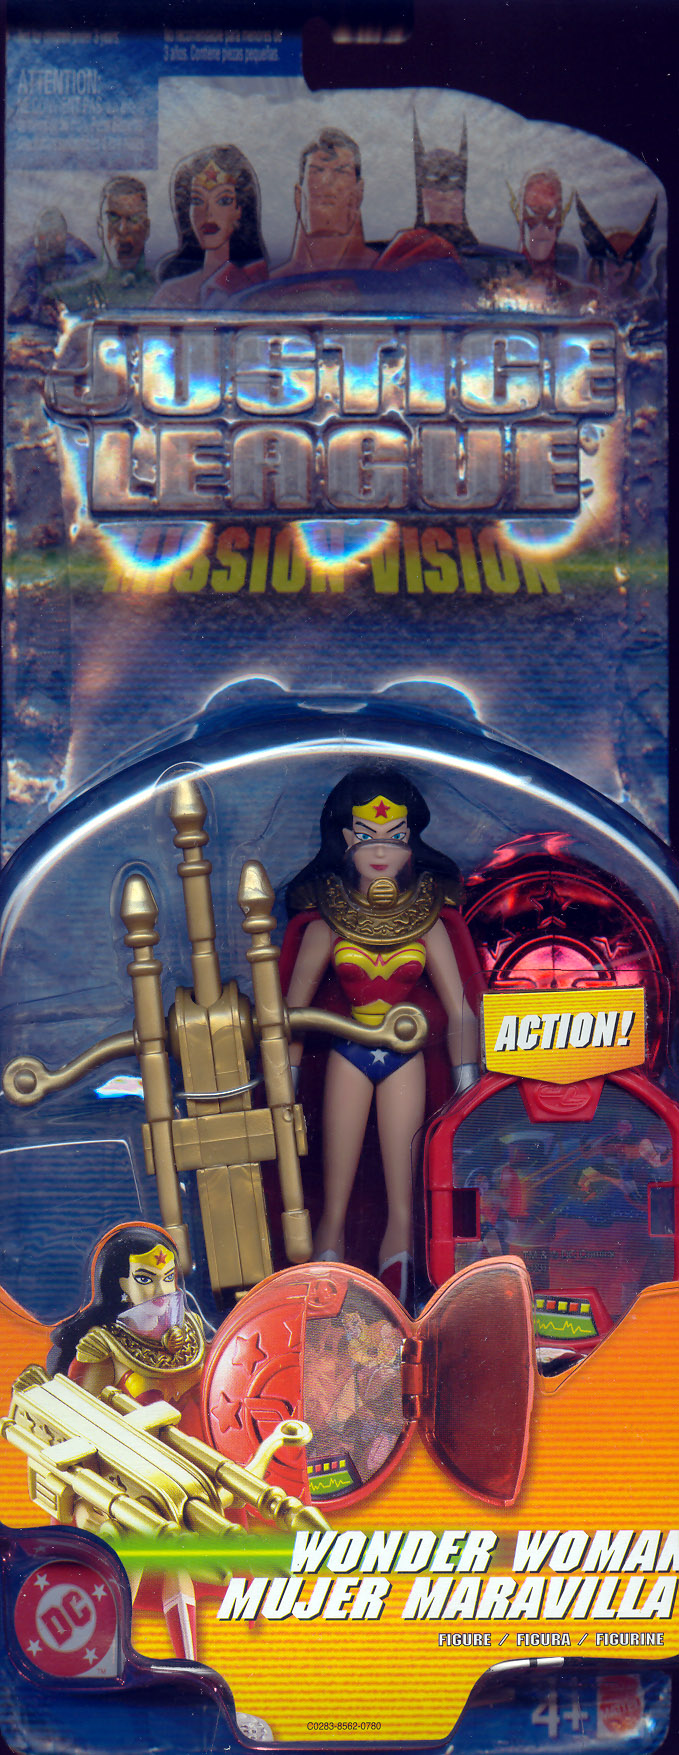 Wonder Woman (Mission Vision)